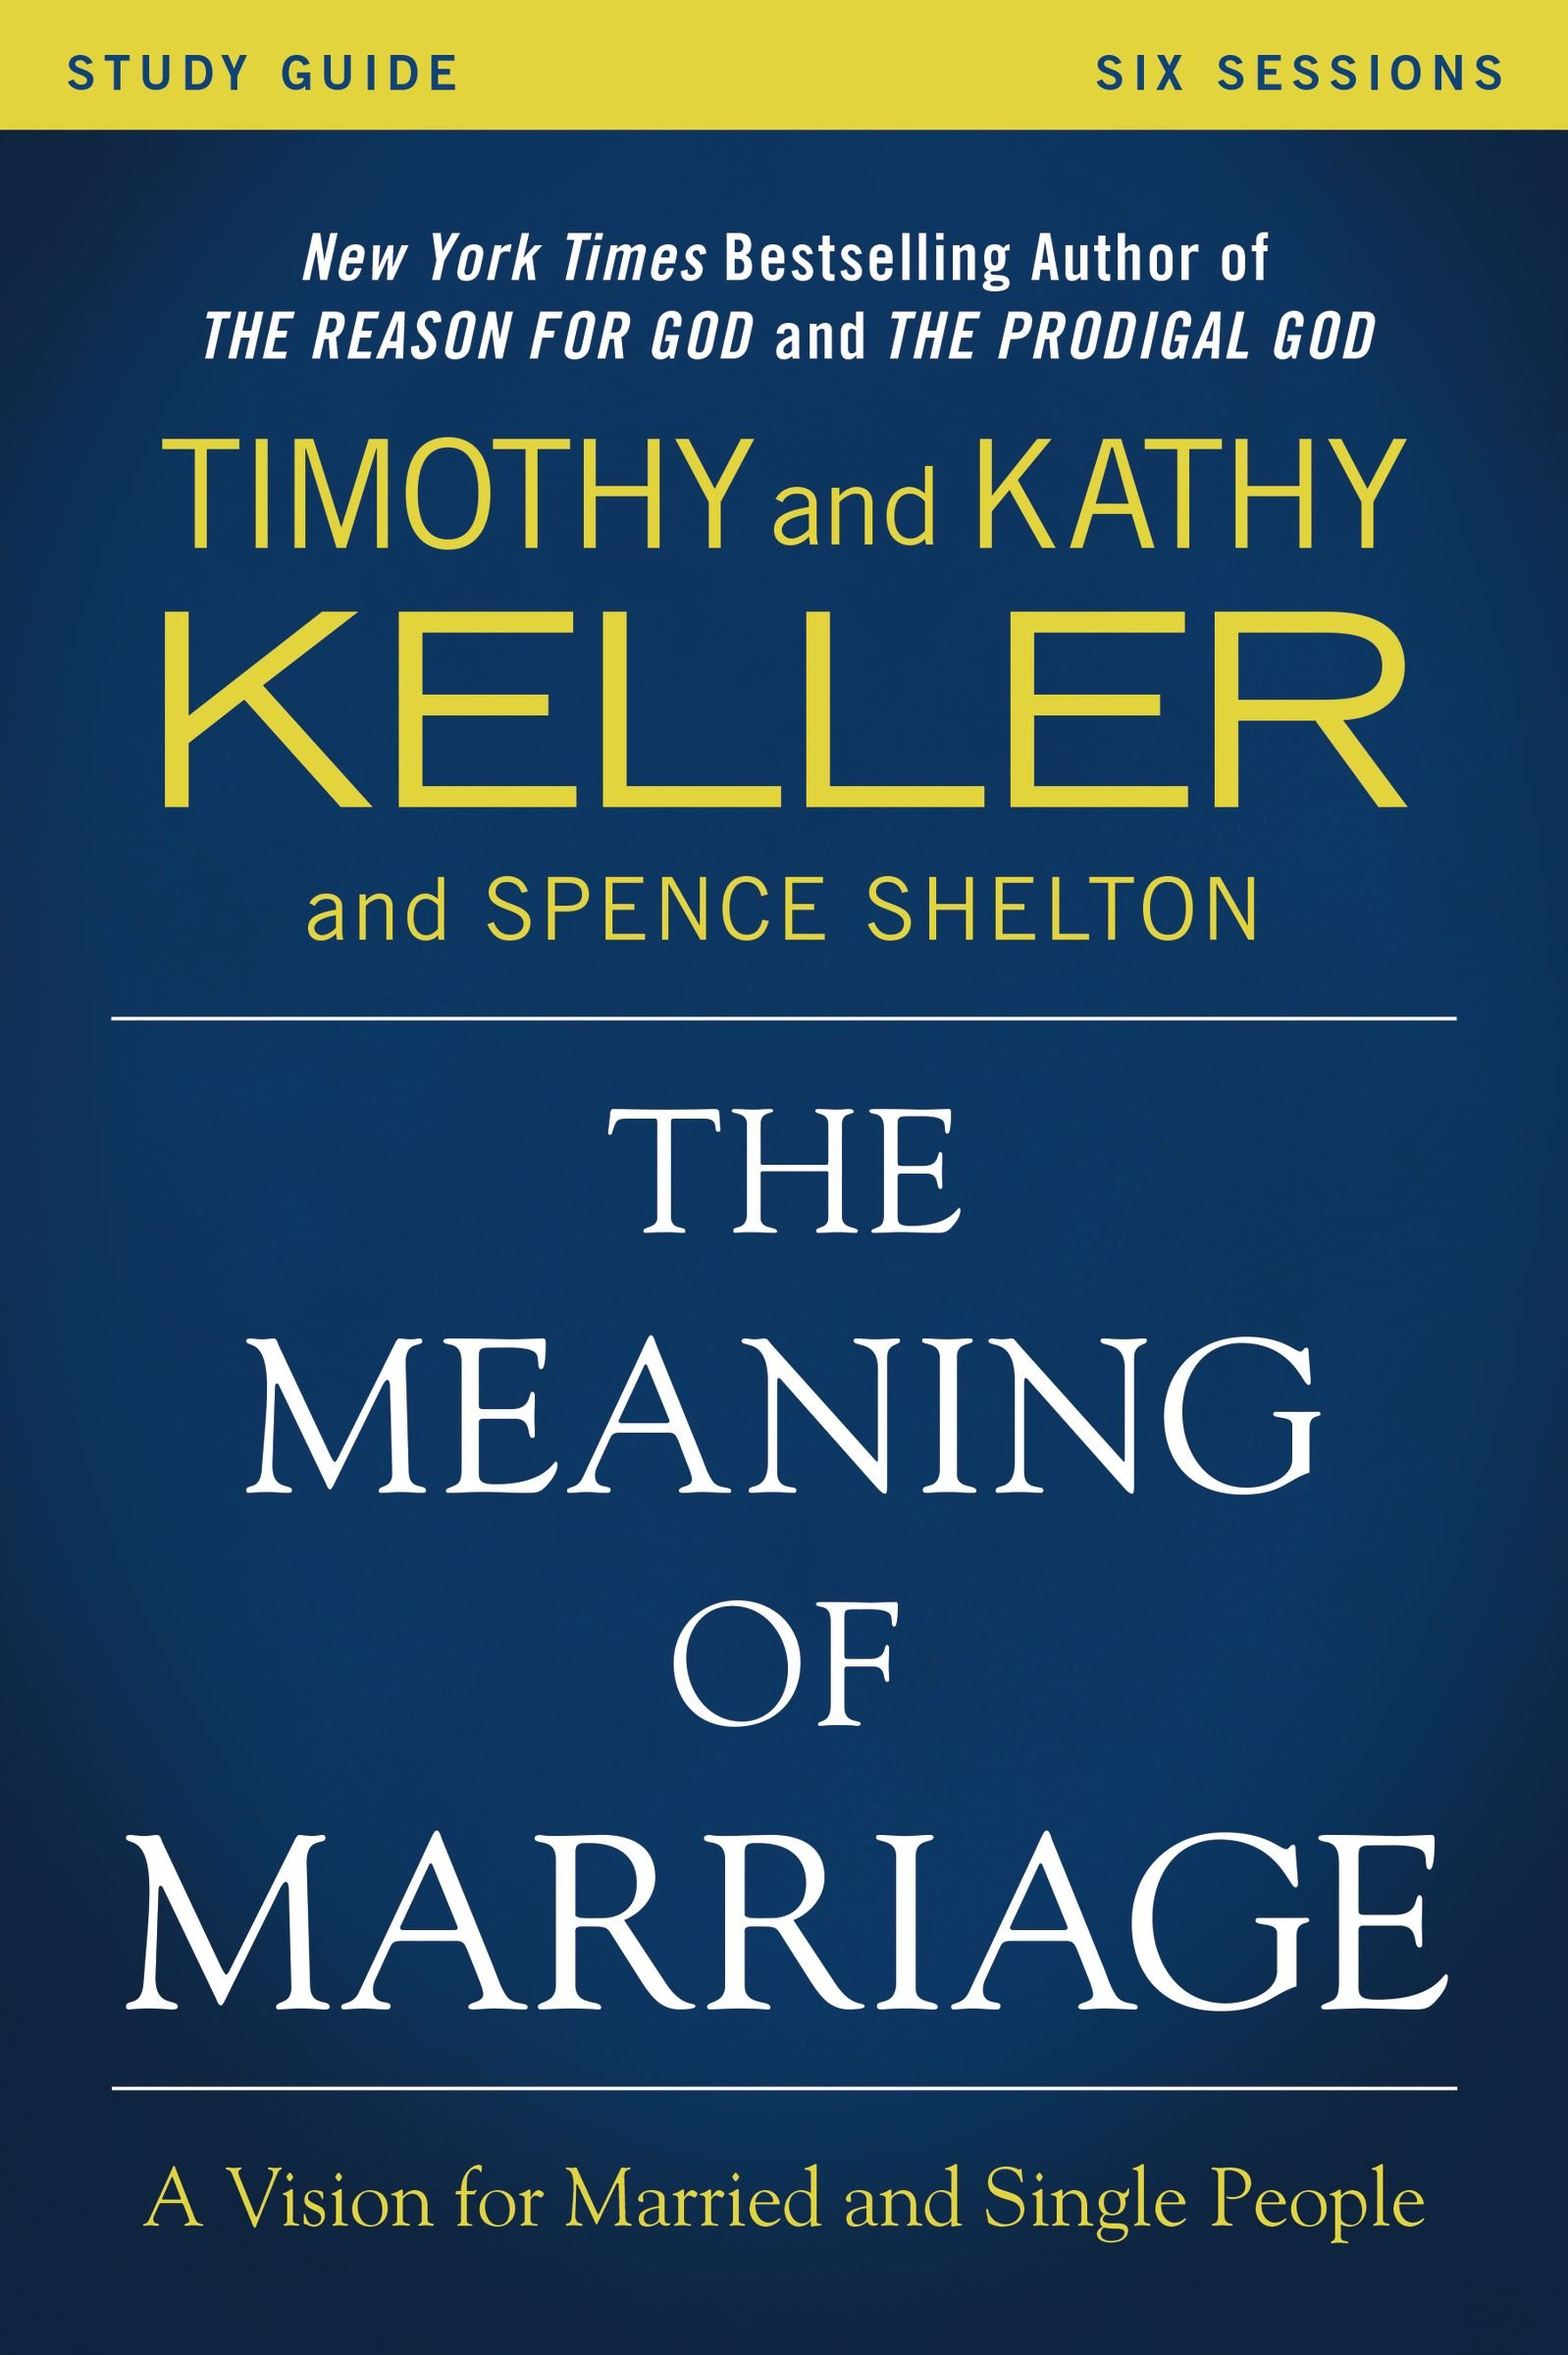 The meaning of marriage study guide a vision for married and the meaning of marriage study guide a vision for married and single people timothy keller kathy keller 9780310868255 amazon books xflitez Gallery